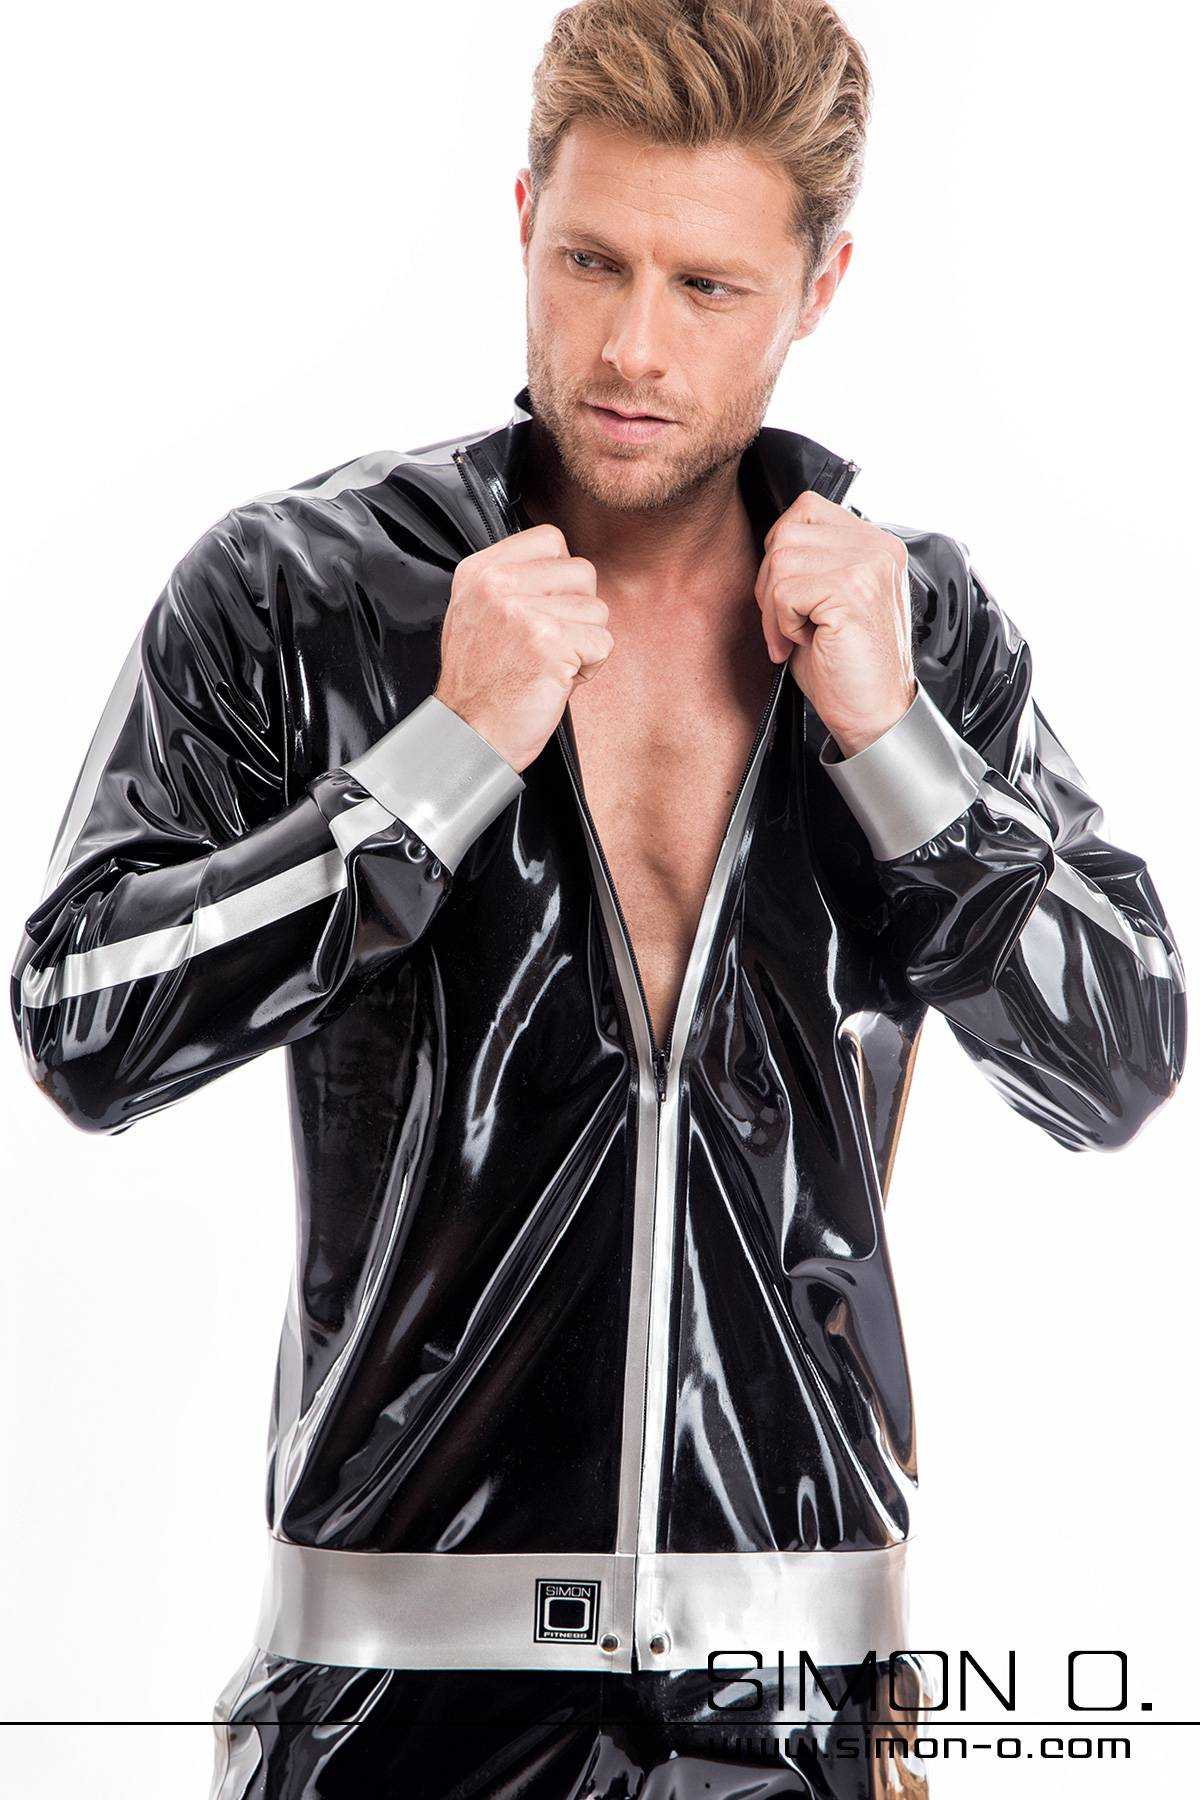 A man wearing a shiny jogging pants and a latex jacket with pockets in black combined with silver